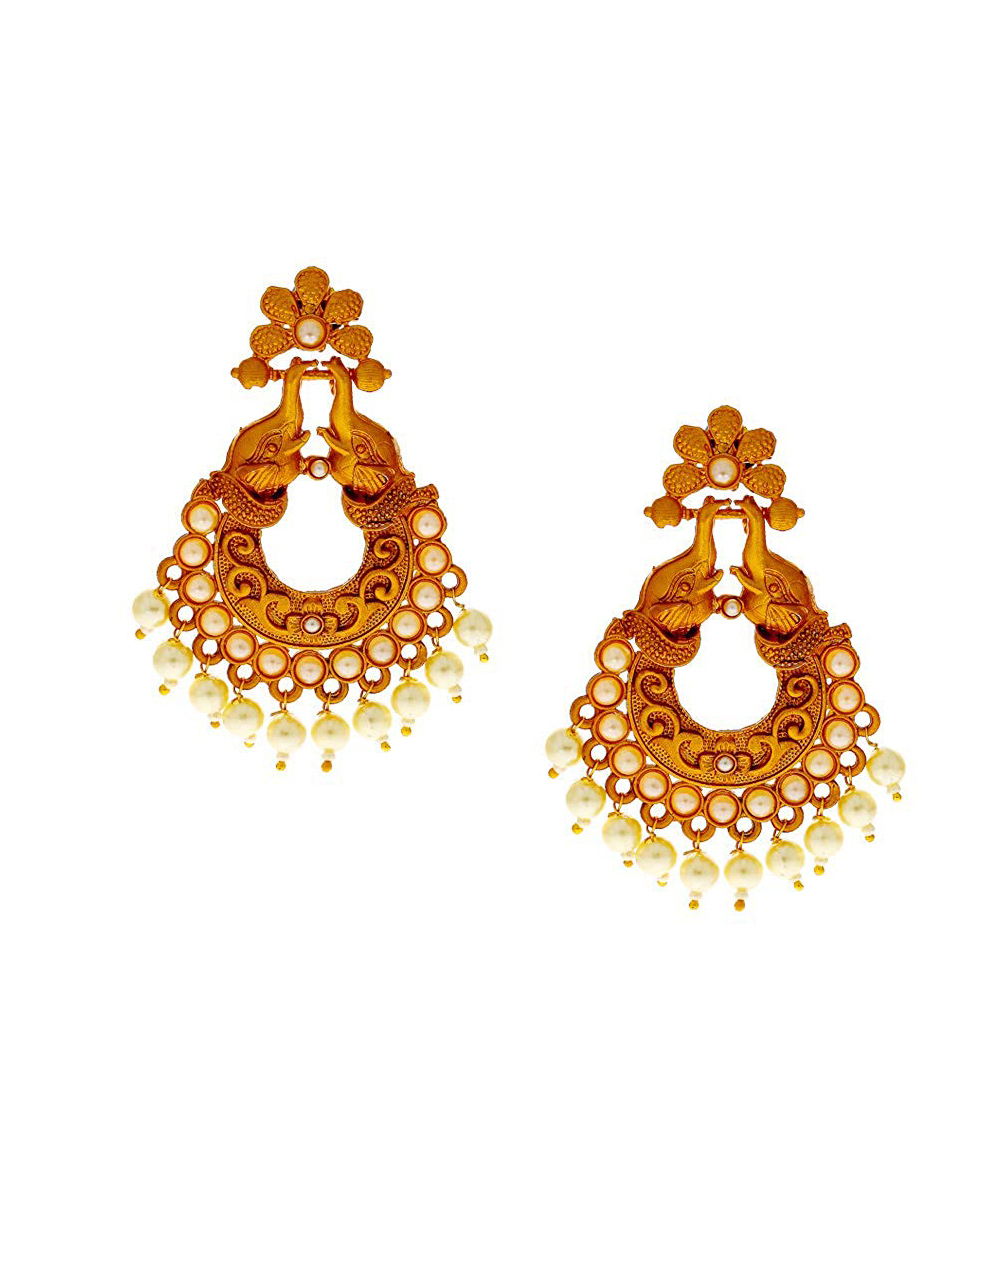 Gold Finish Moti Styled Traditional Earrings For Girls